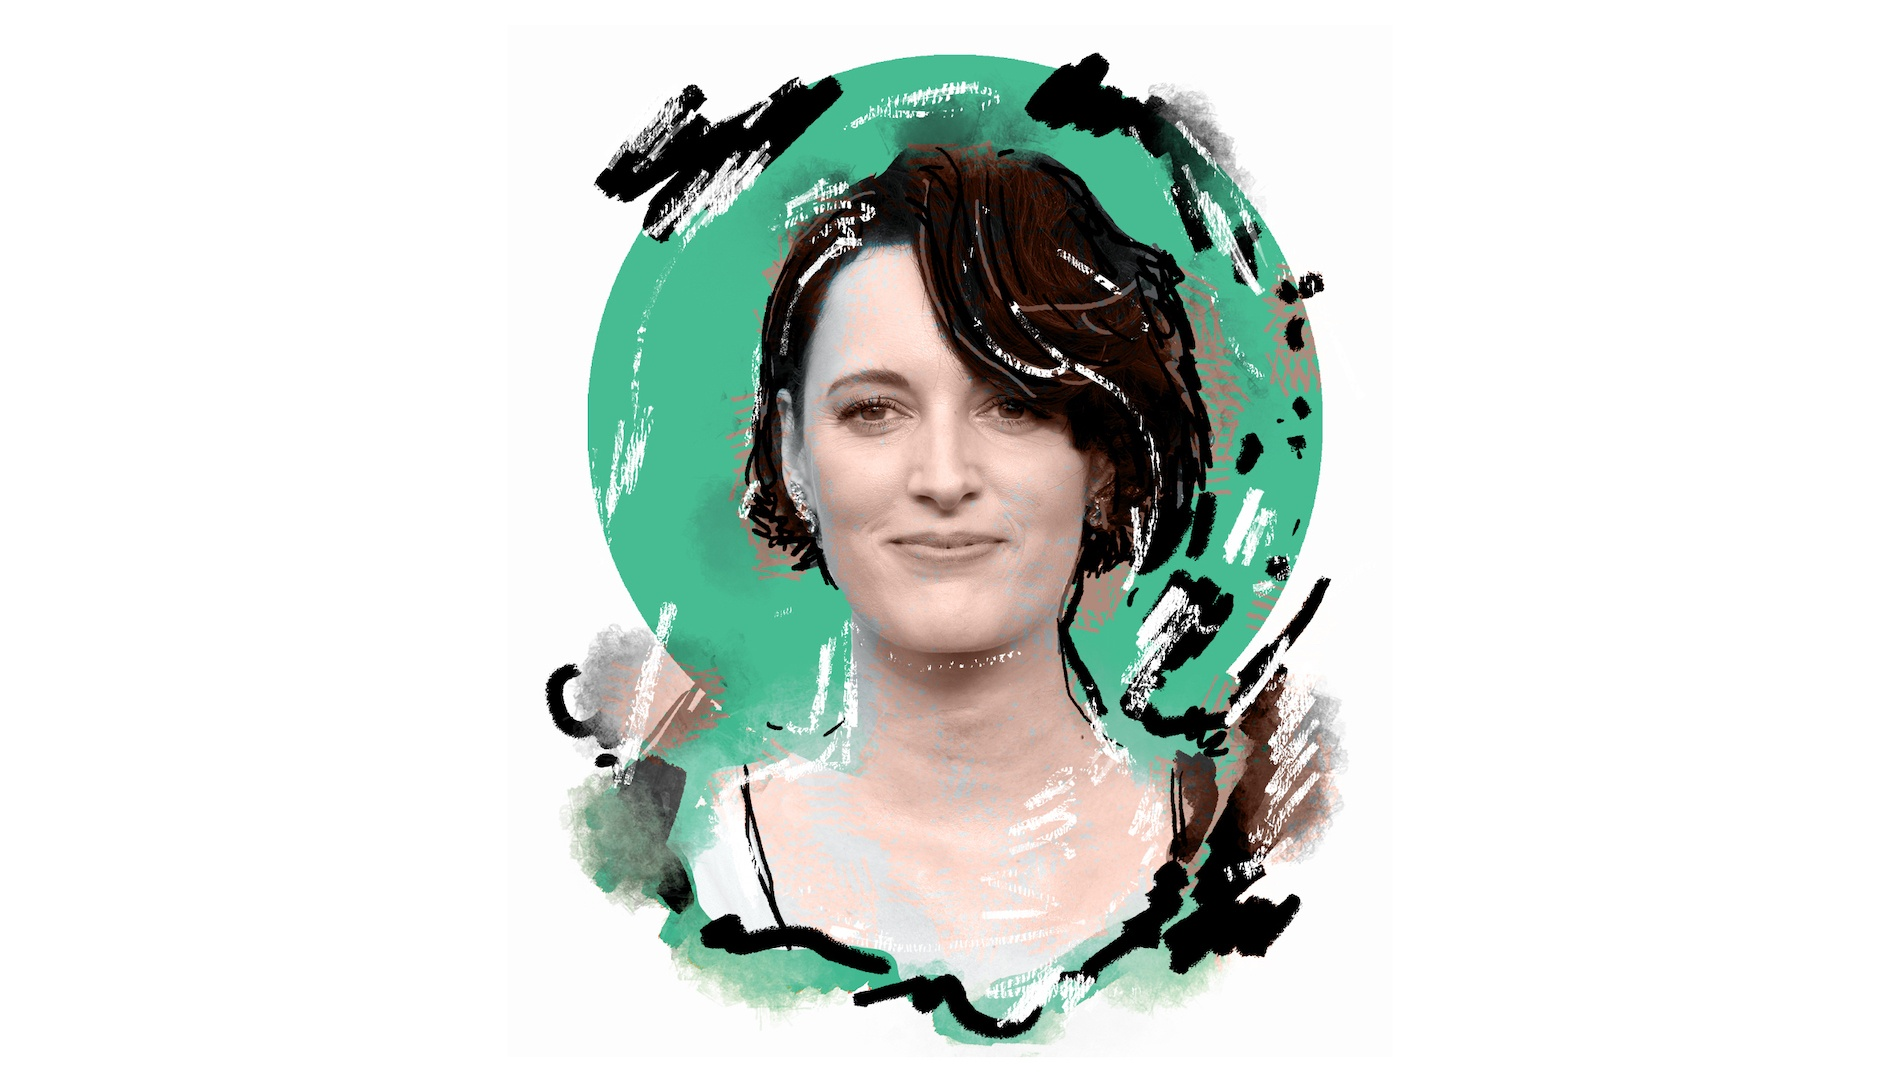 Phoebe Waller-Bridge Shares Some Unlikely Audition Advice